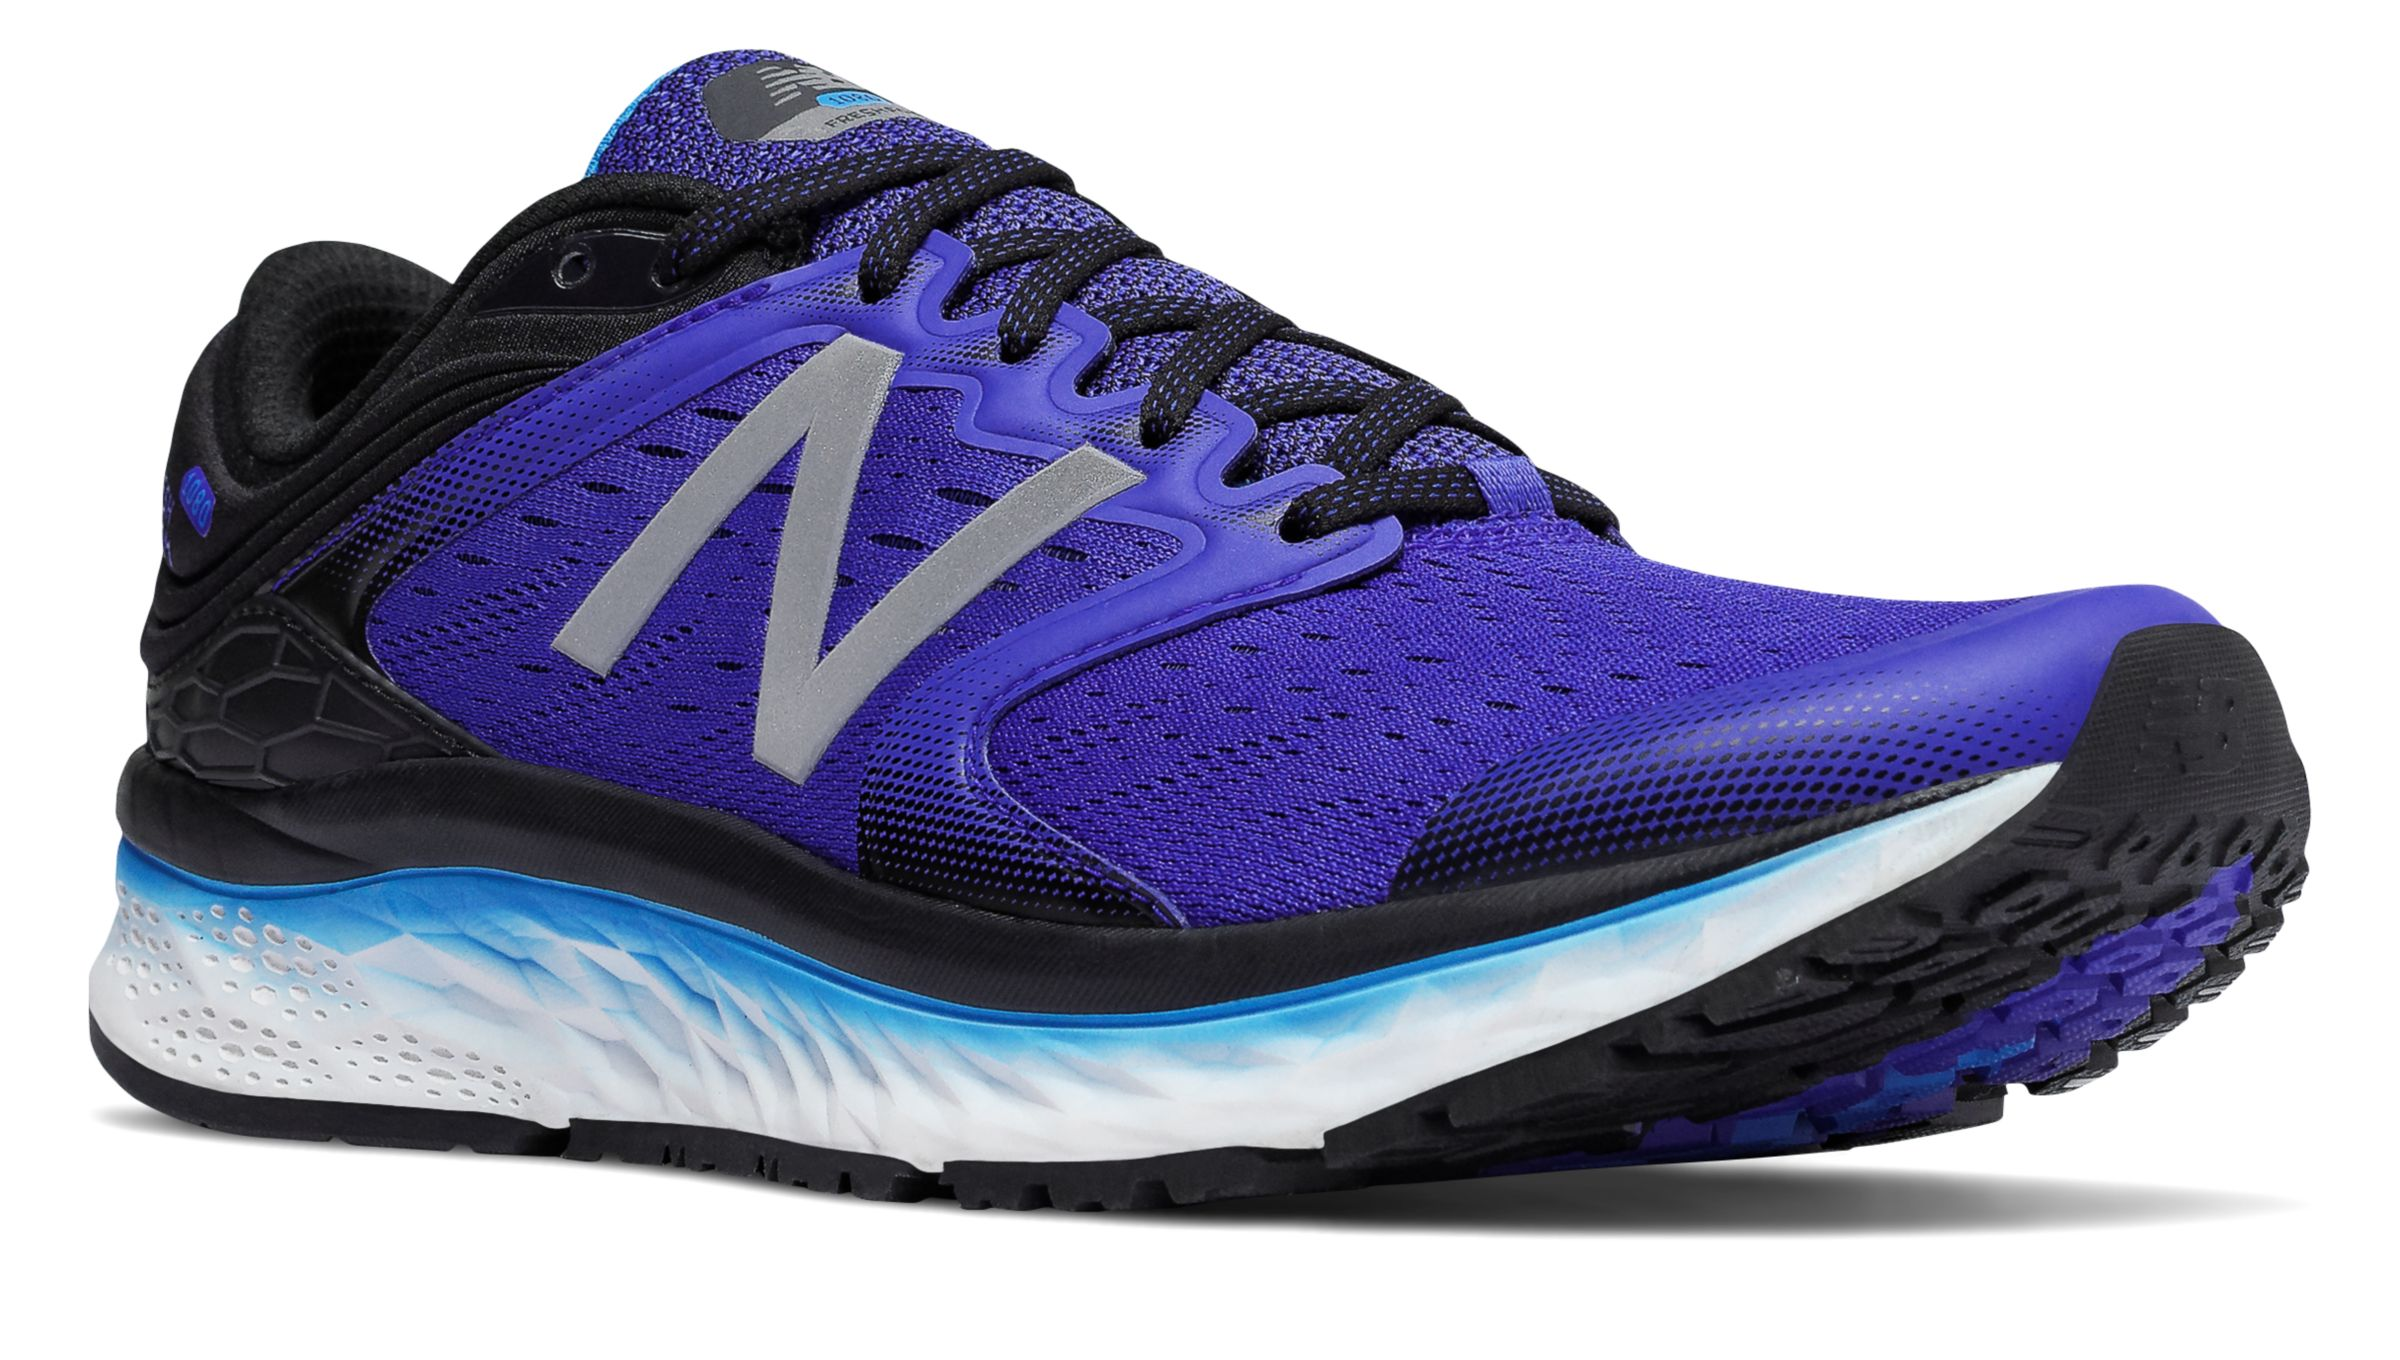 NB Fresh Foam 1080v8, Pacific with Black & Maldives Blue